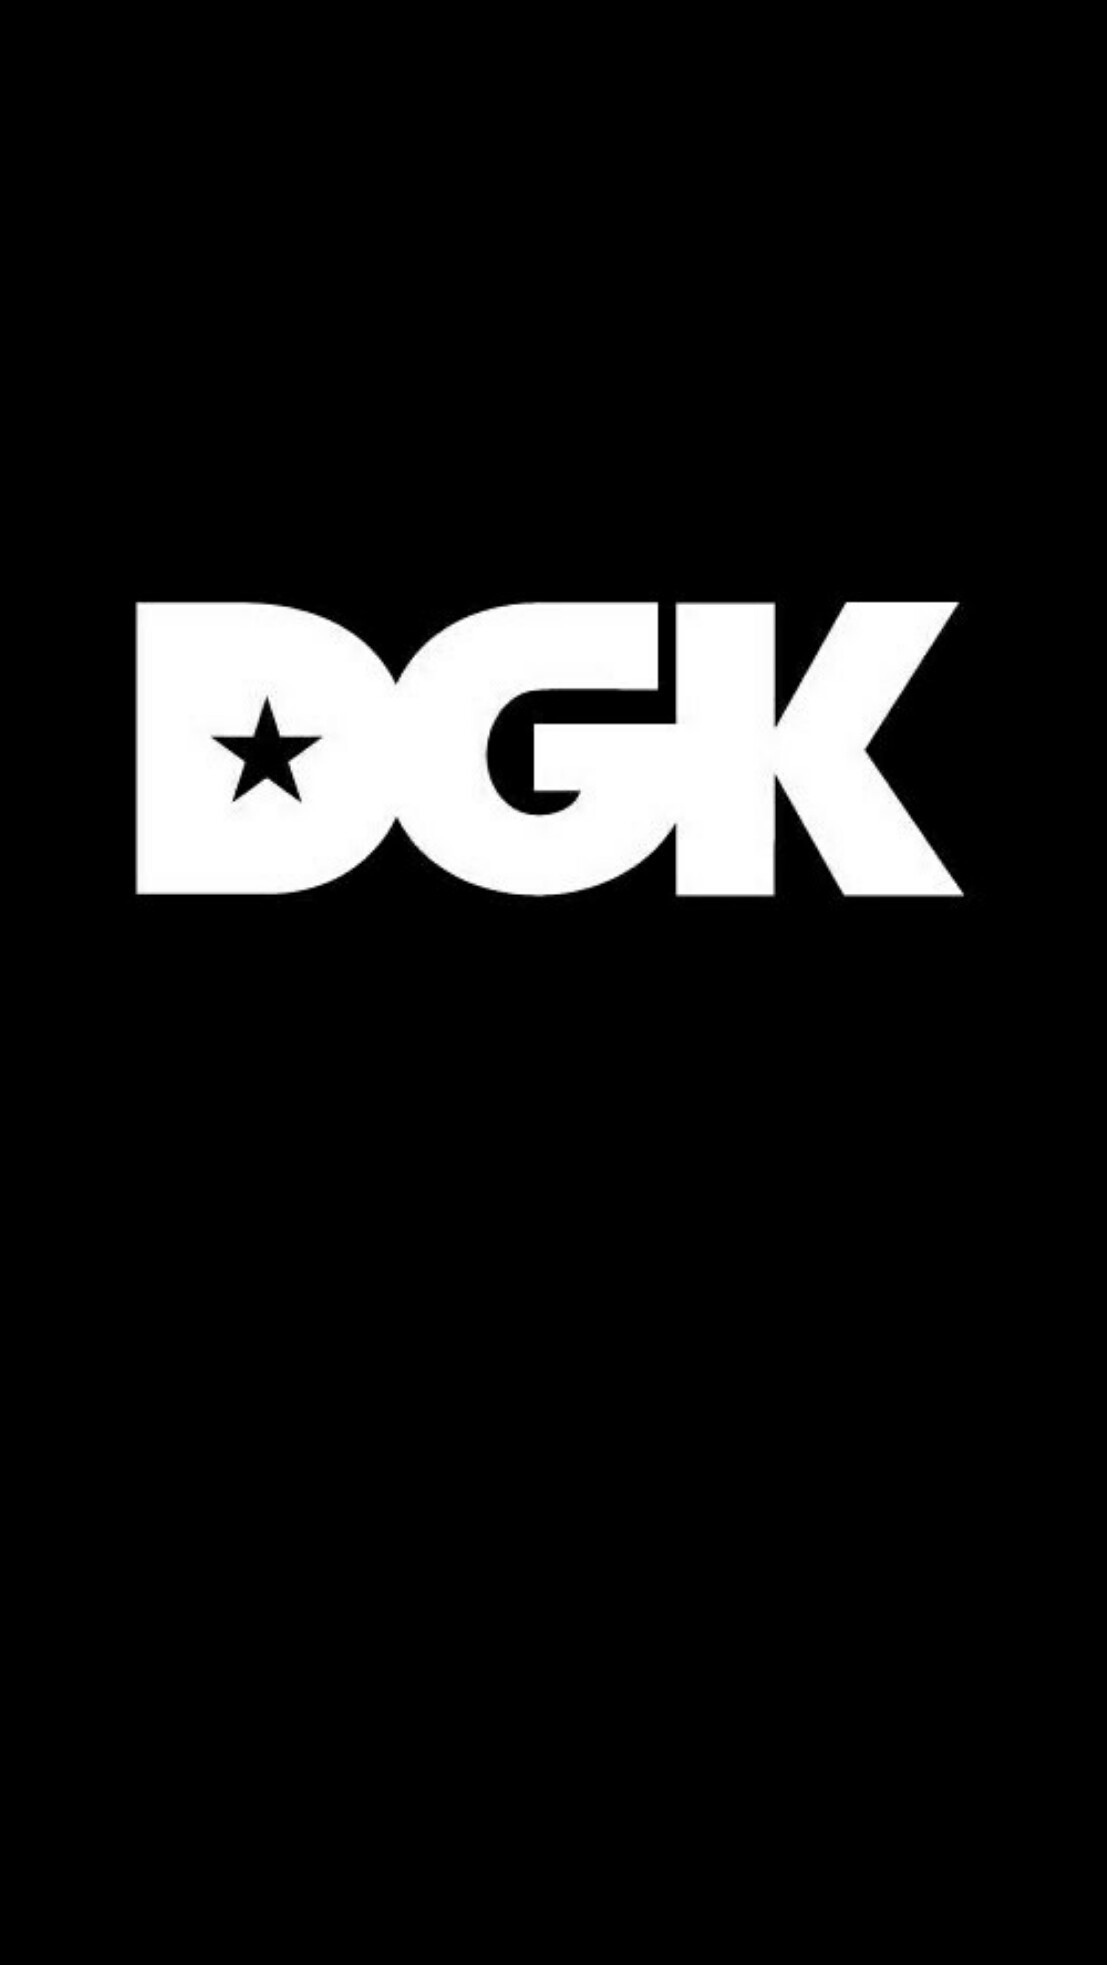 Res: 1107x1965, #dgk #black #wallpaper #iPhone #android